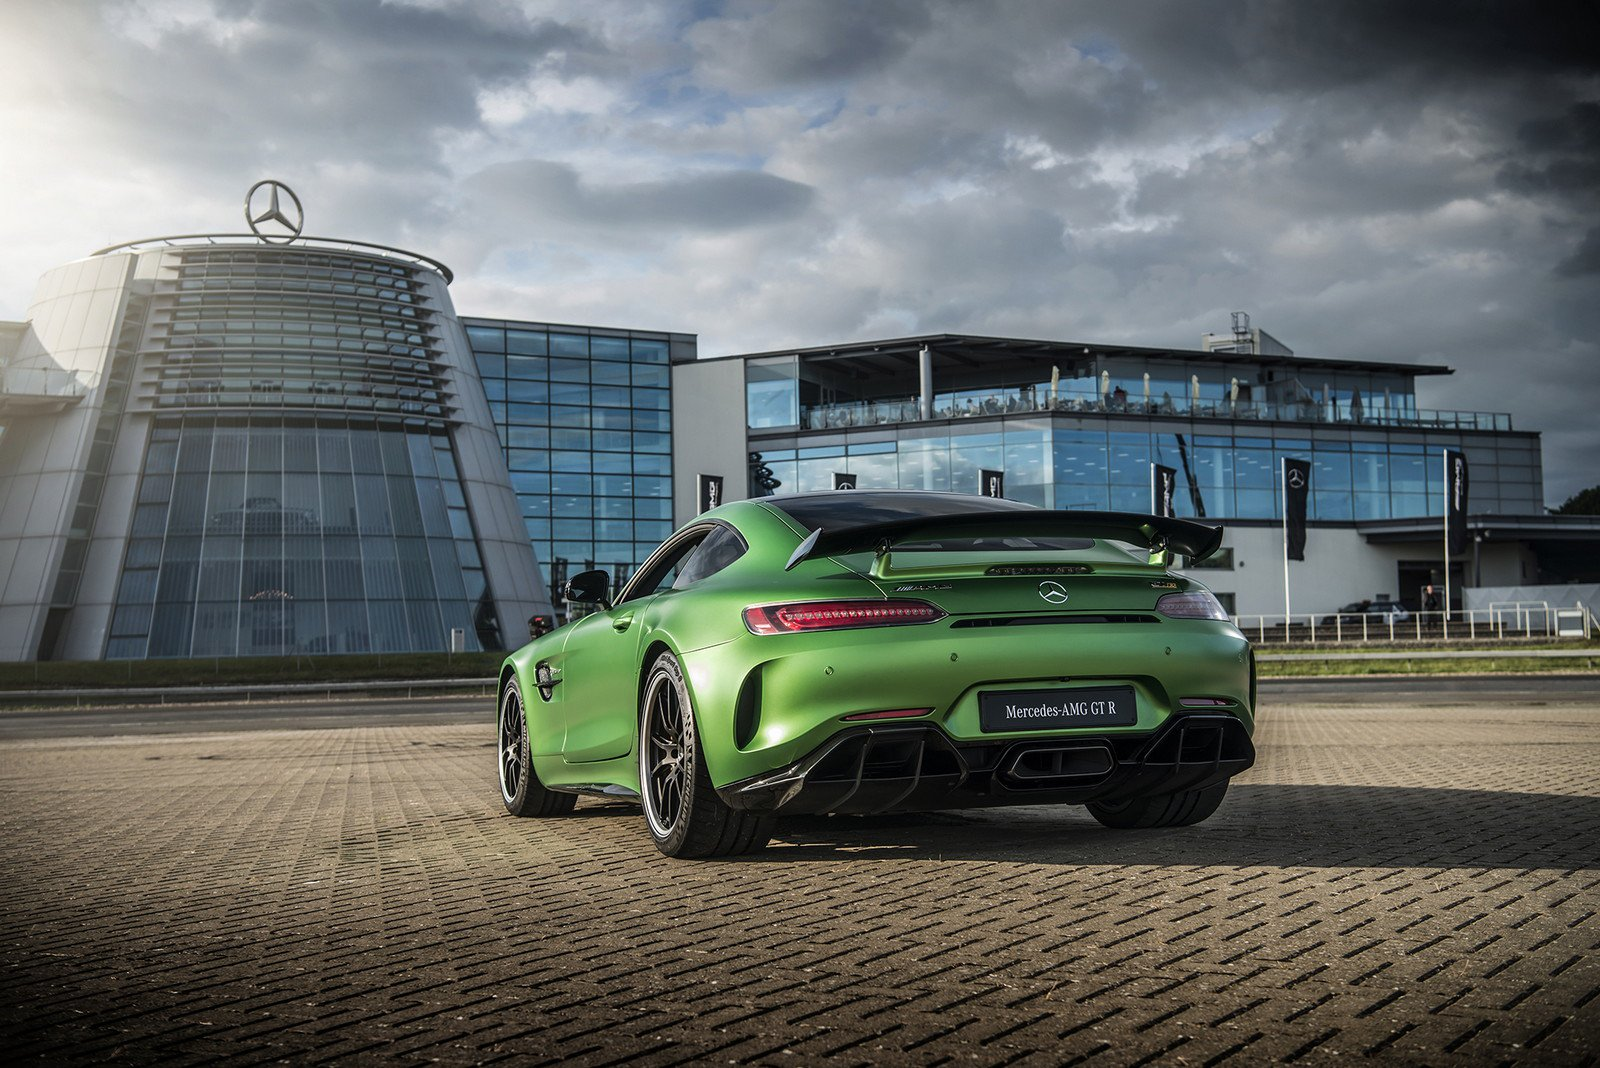 Mercedes-AMG GT R sets the record for the fastest rear-wheel